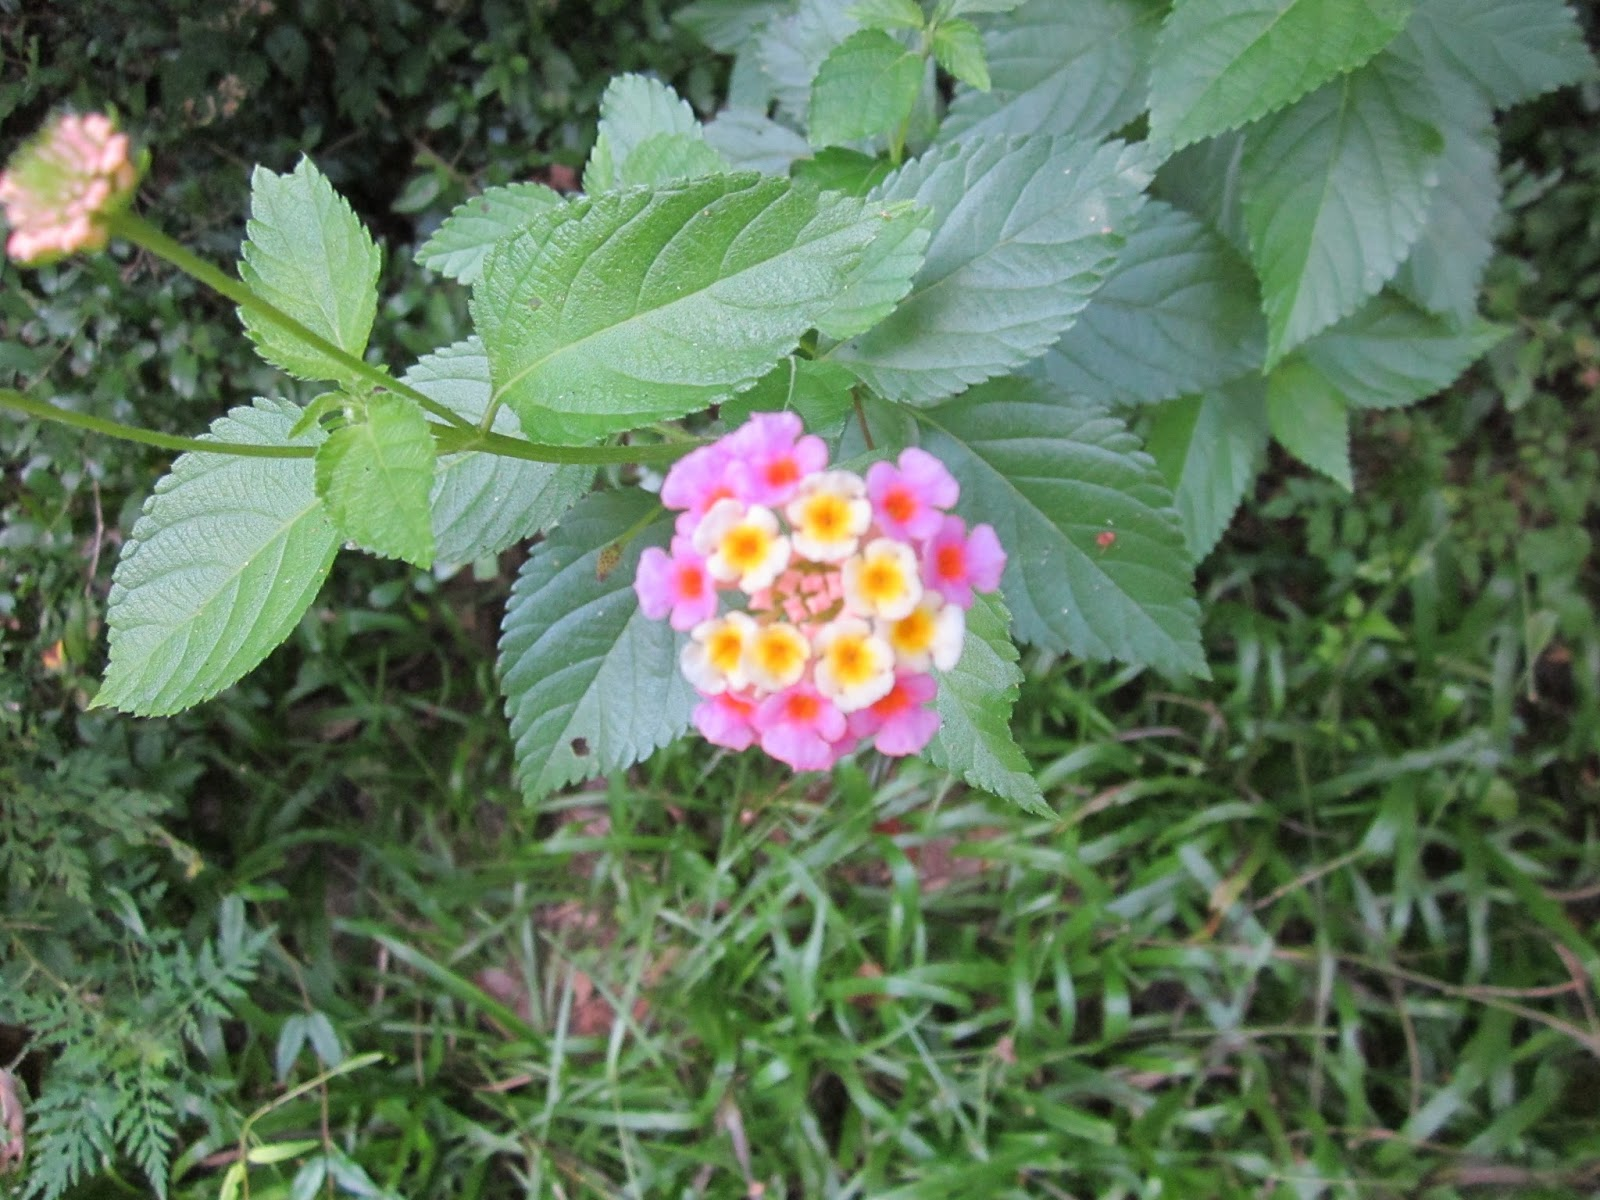 This Time The Camera Focused On Flower And It Showed Diffe Colored Flowers Pink In Center Circled By White With Yellow Centers